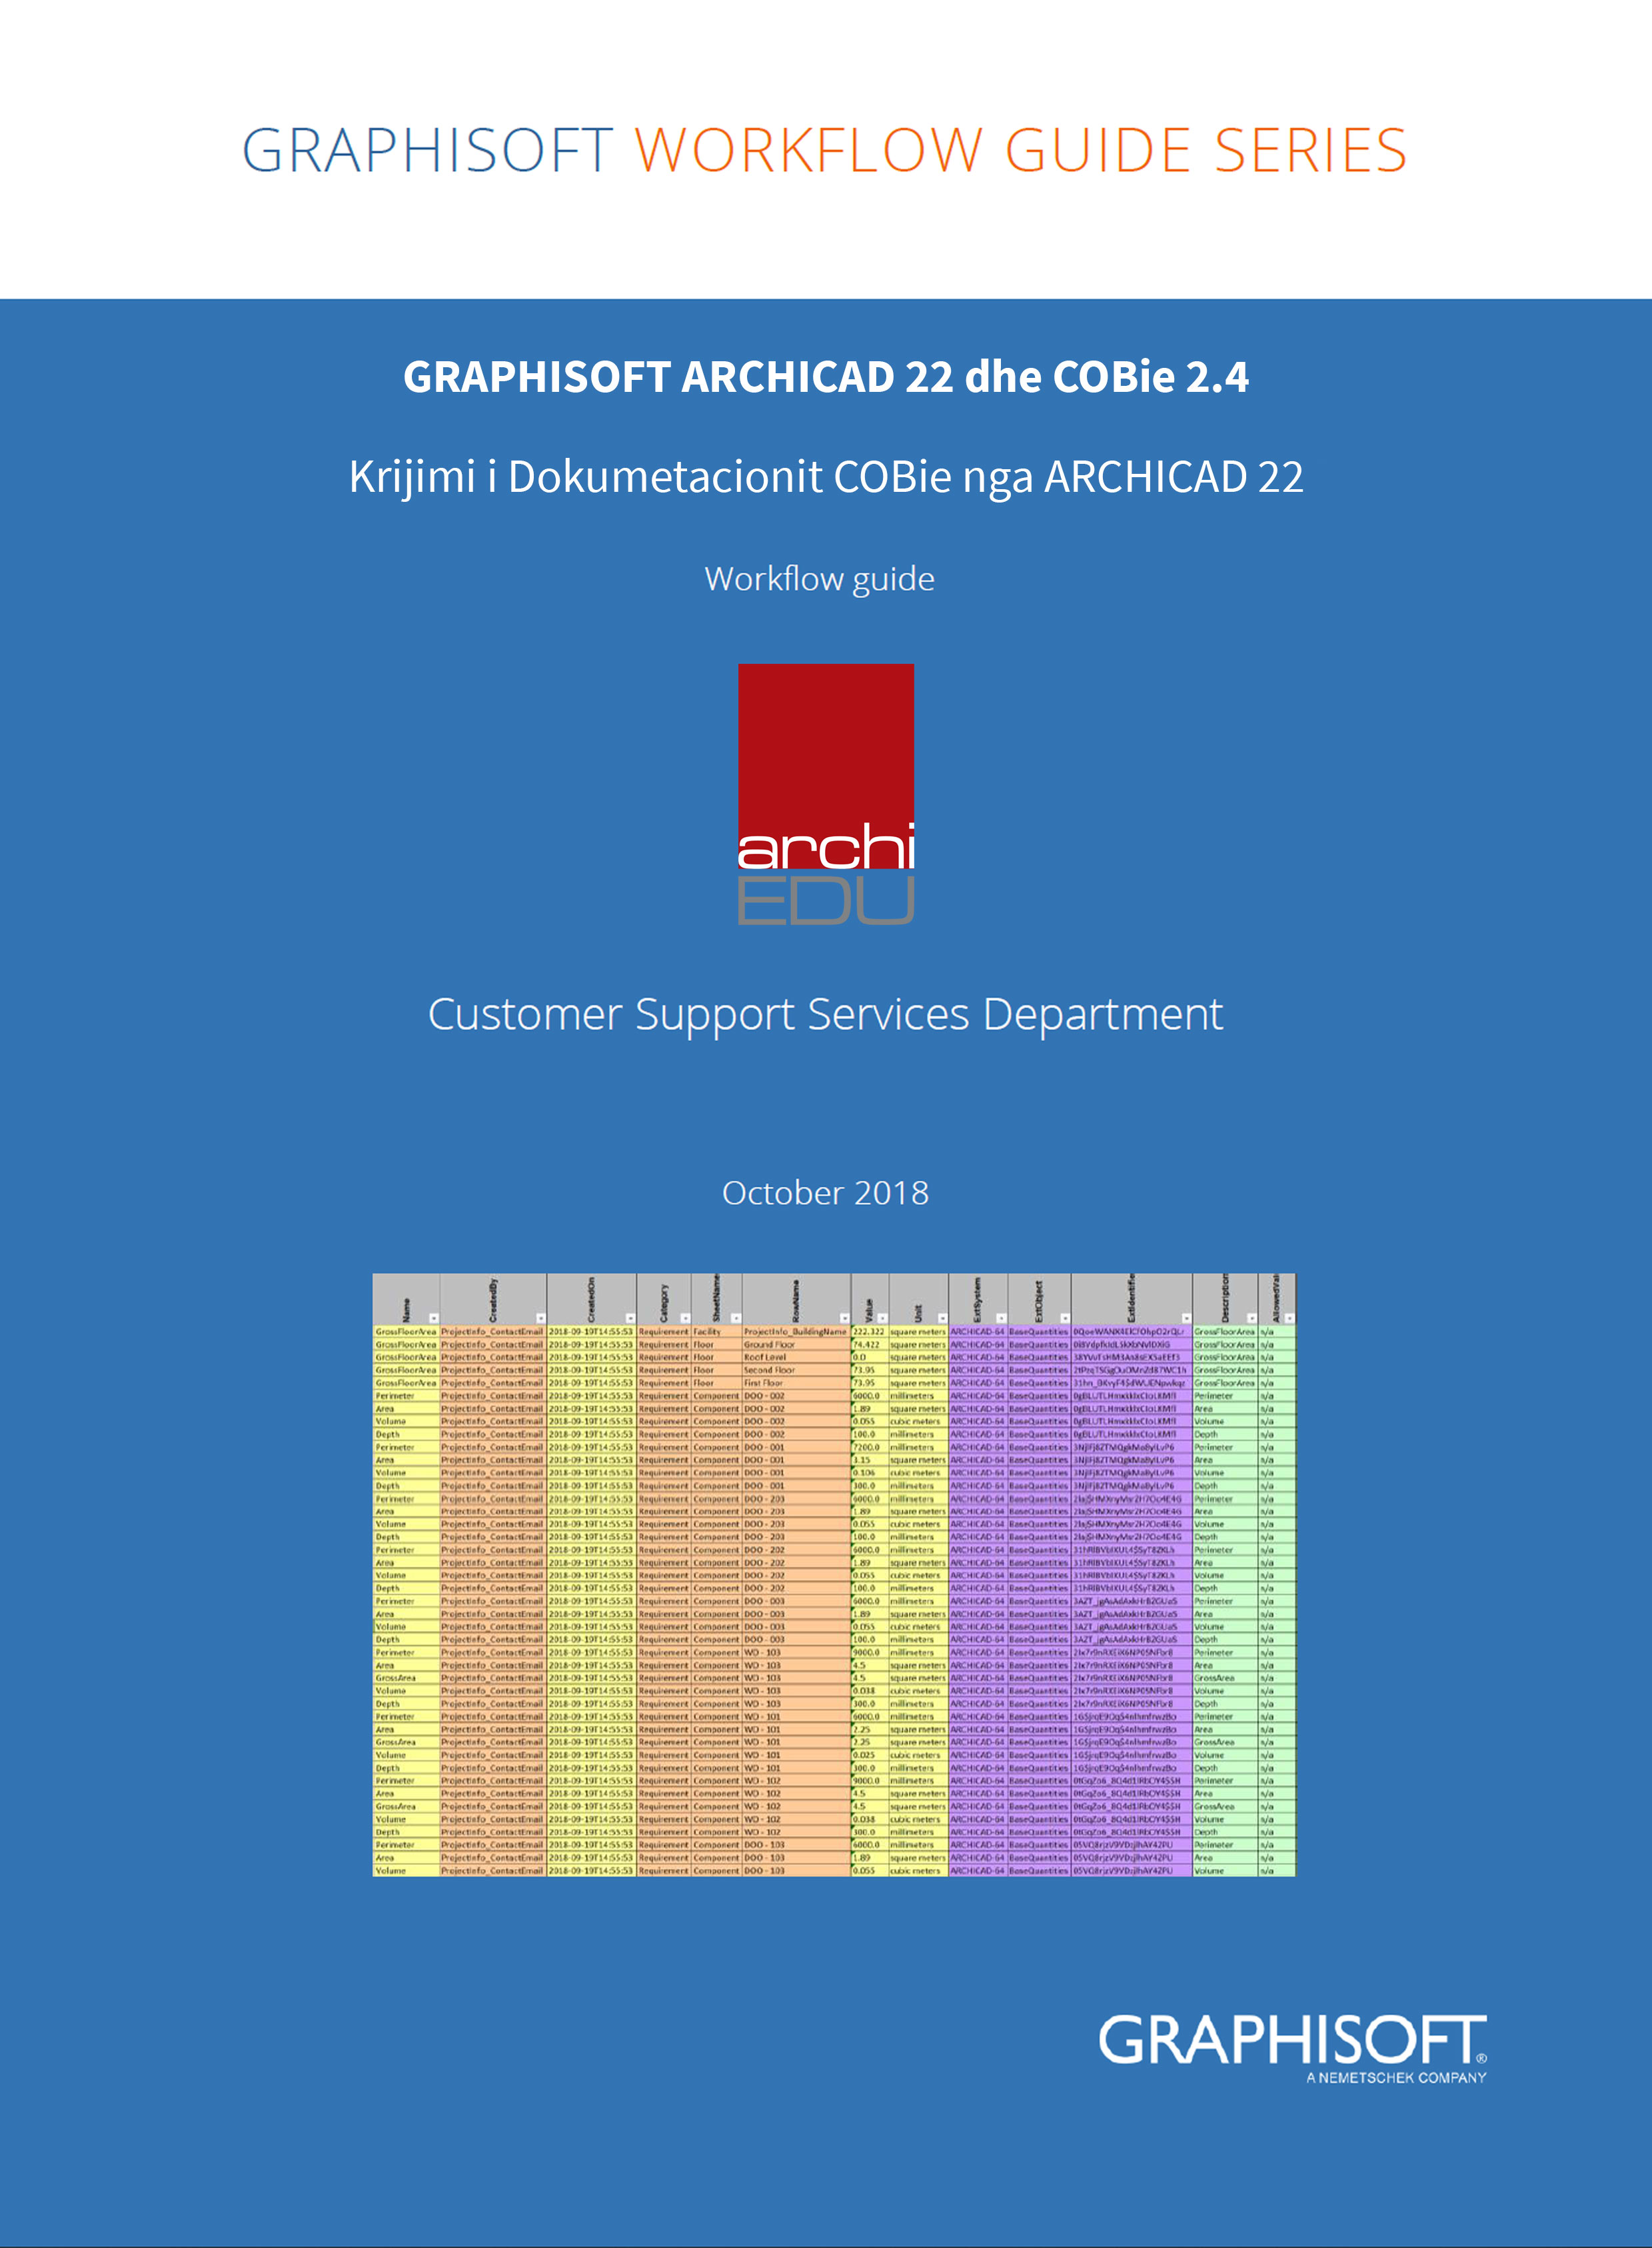 GWG_ARCHICAD-22-and-COBie-2.4.jpg